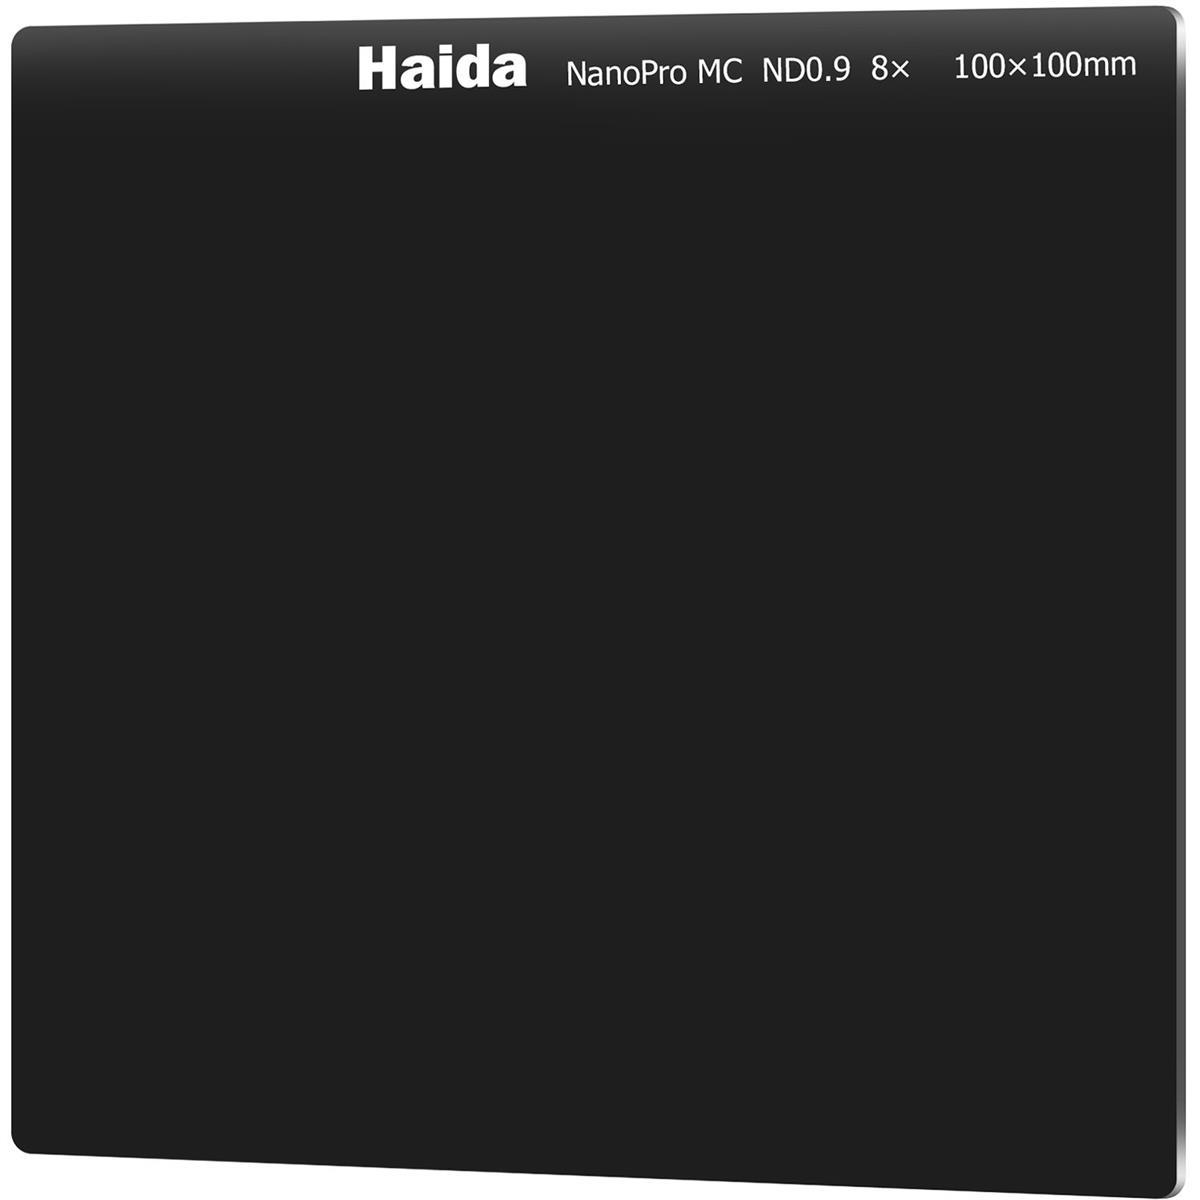 Haida NanoPro ND0.9 (8x) 3-Stop Multicoated Filter 100x100mm